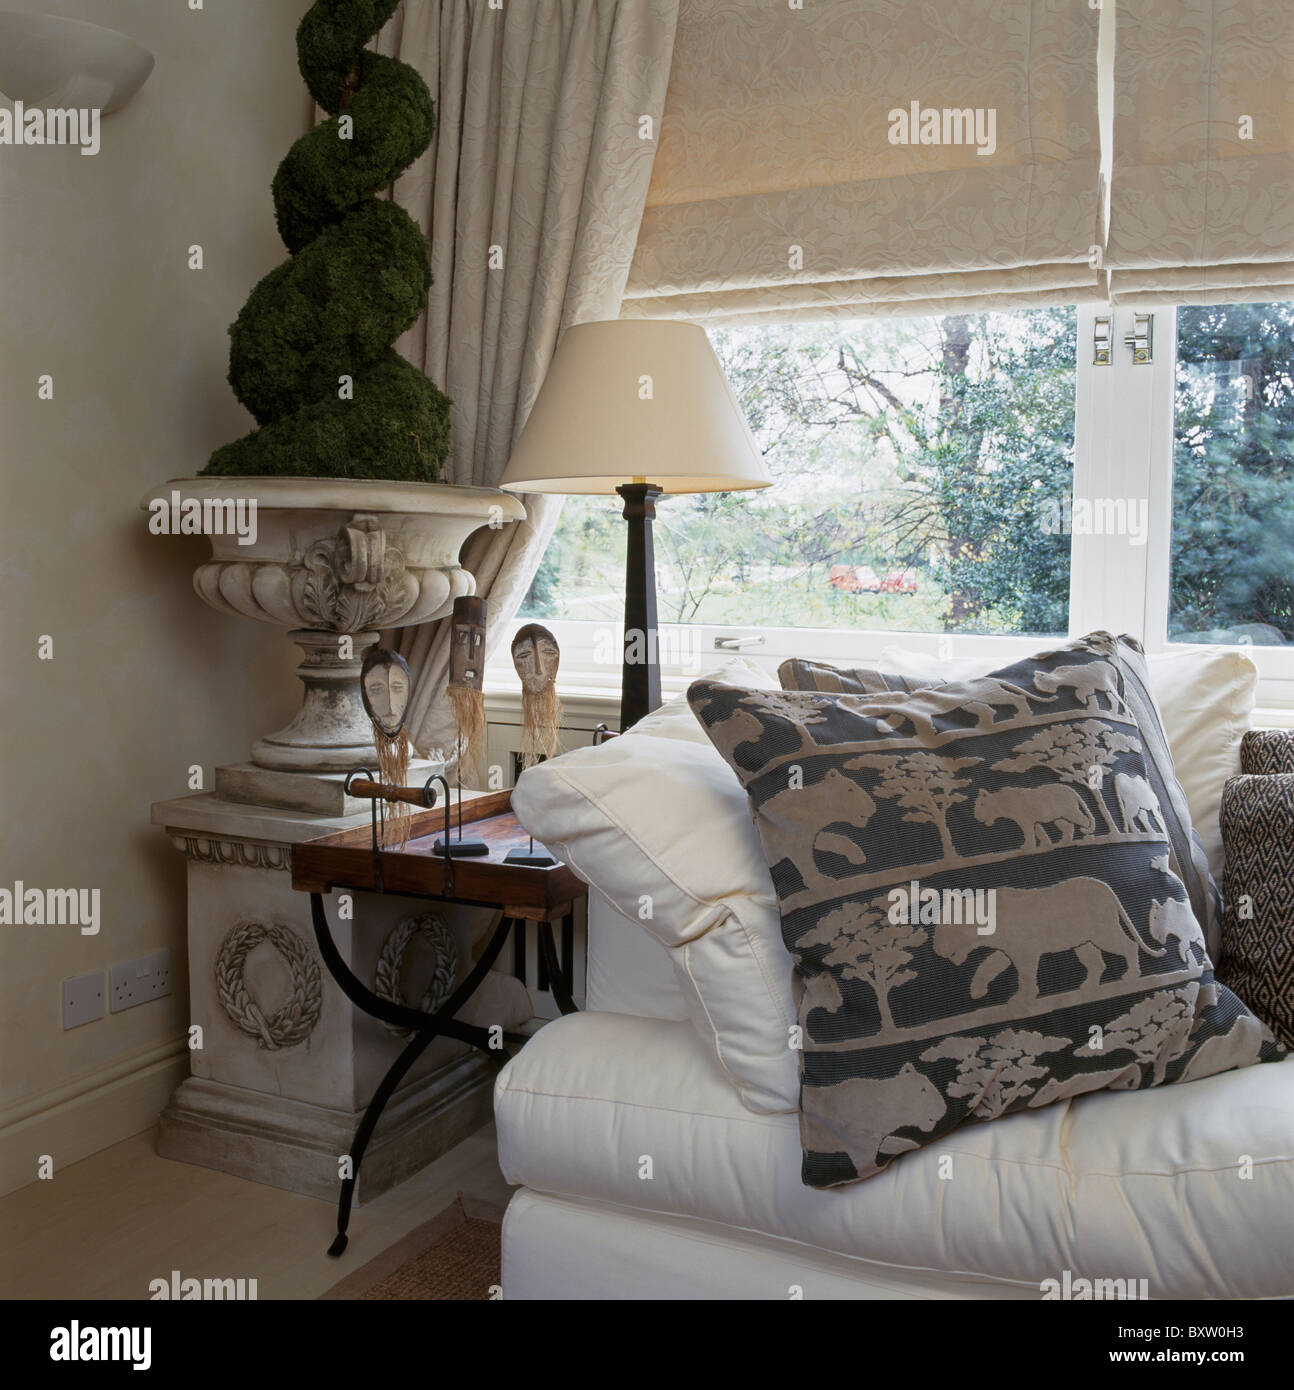 cream sofas stockfotos cream sofas bilder seite 2 alamy. Black Bedroom Furniture Sets. Home Design Ideas